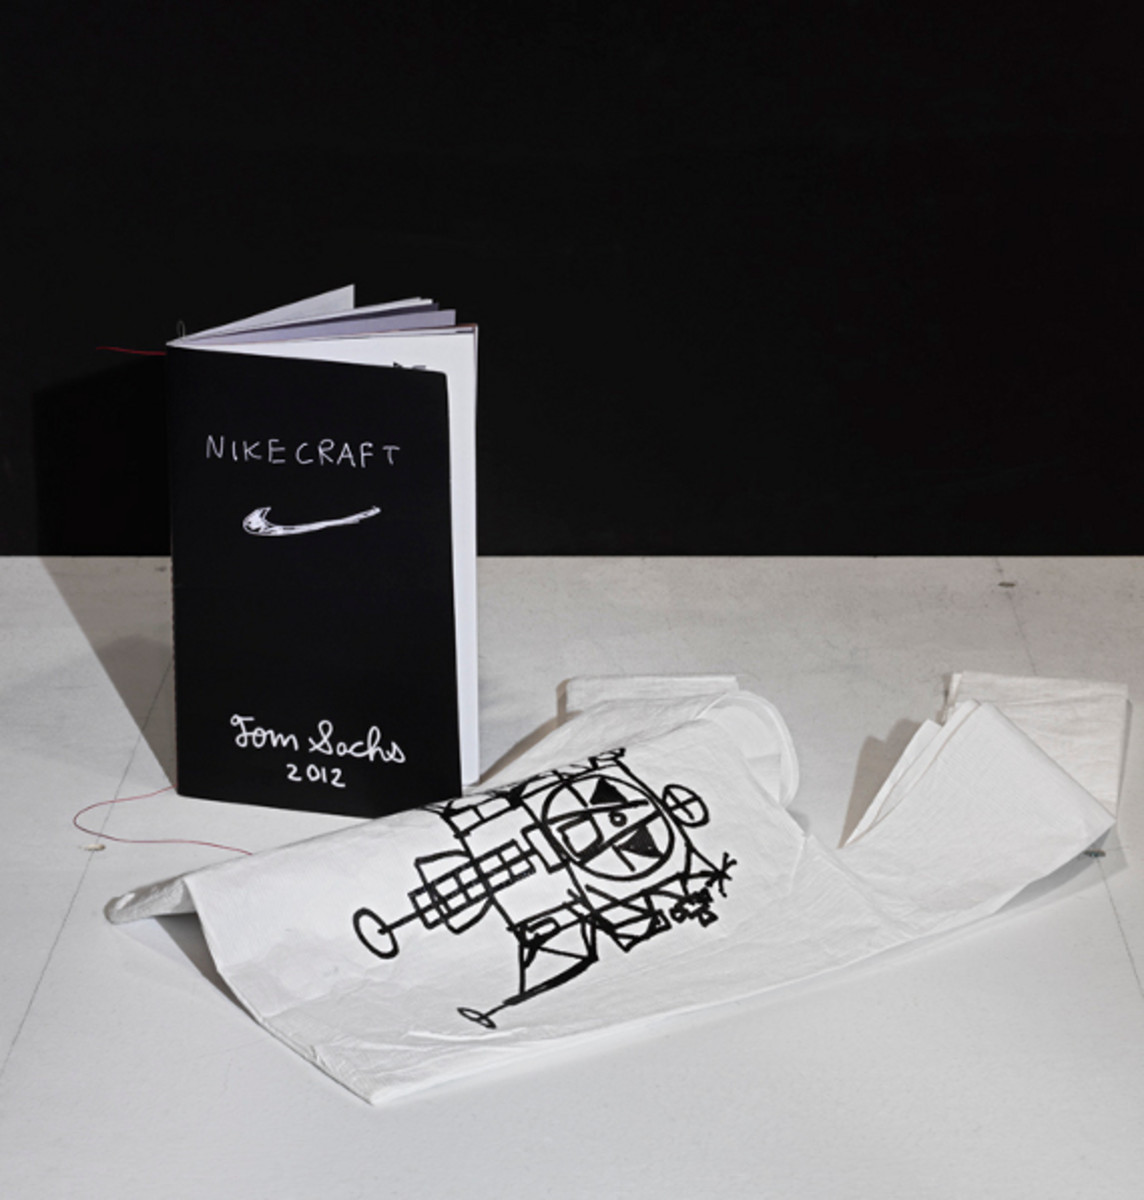 nike-tom-sachs-nikecraft-collection-launch-event-20